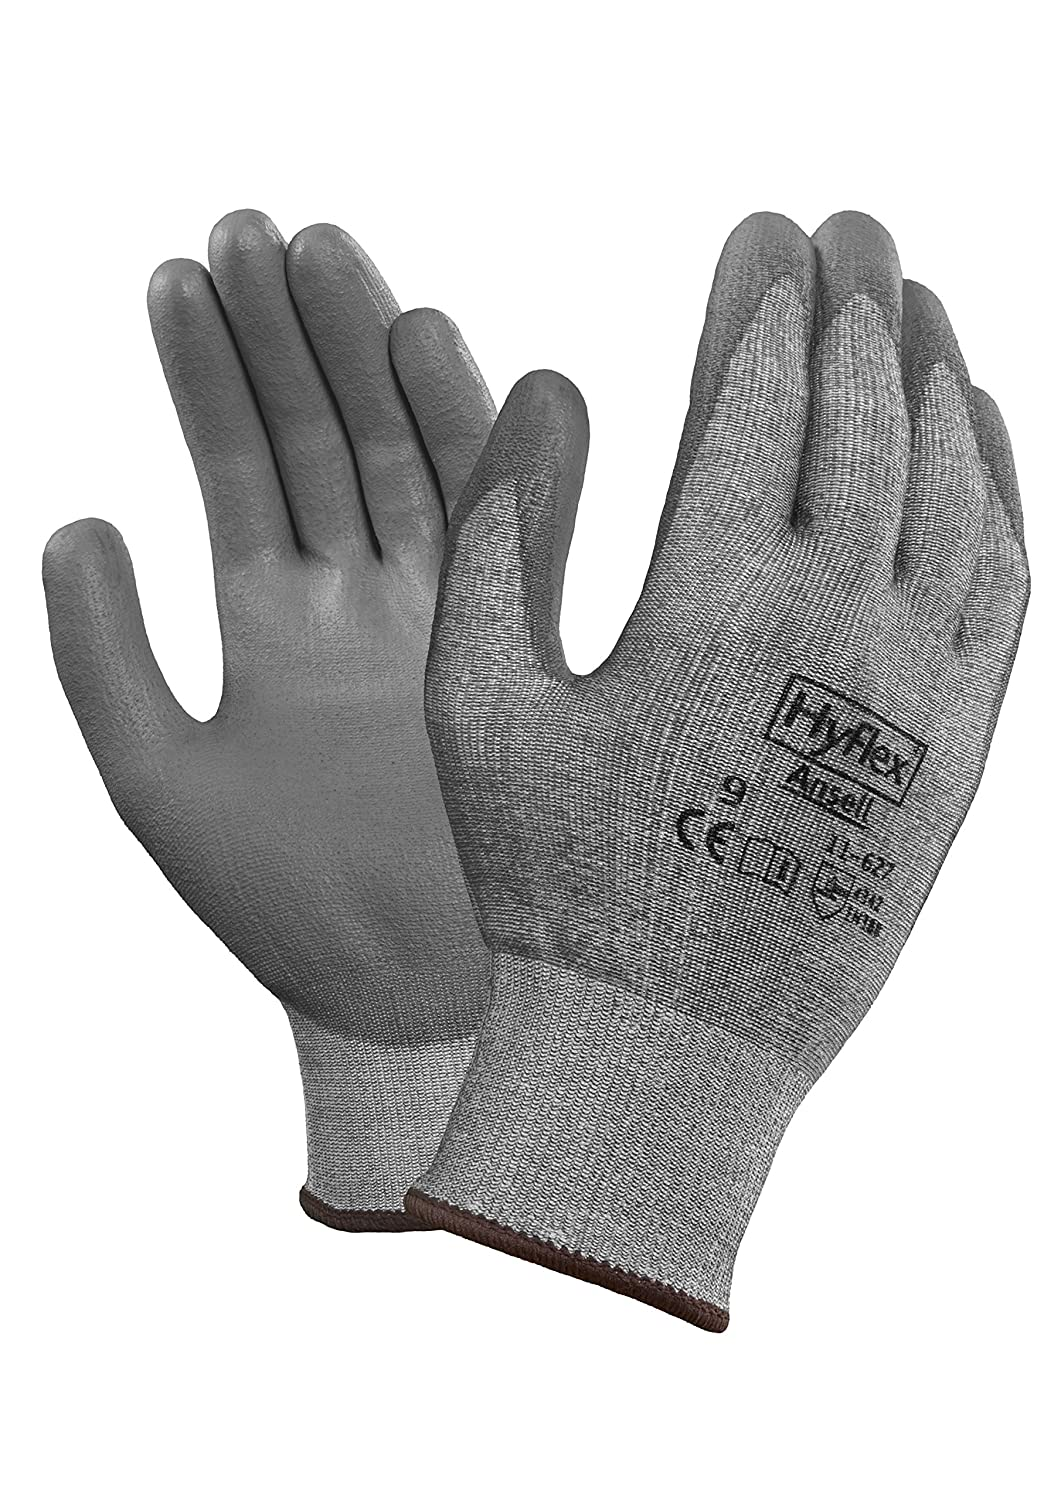 0.33 Height Gray 5 Width 8 Length Ansell 116276 HyFlex 11-627 Coated Dipped Dyneema HPPE and Lycra Lined Gloves Size 6 Pack of 12